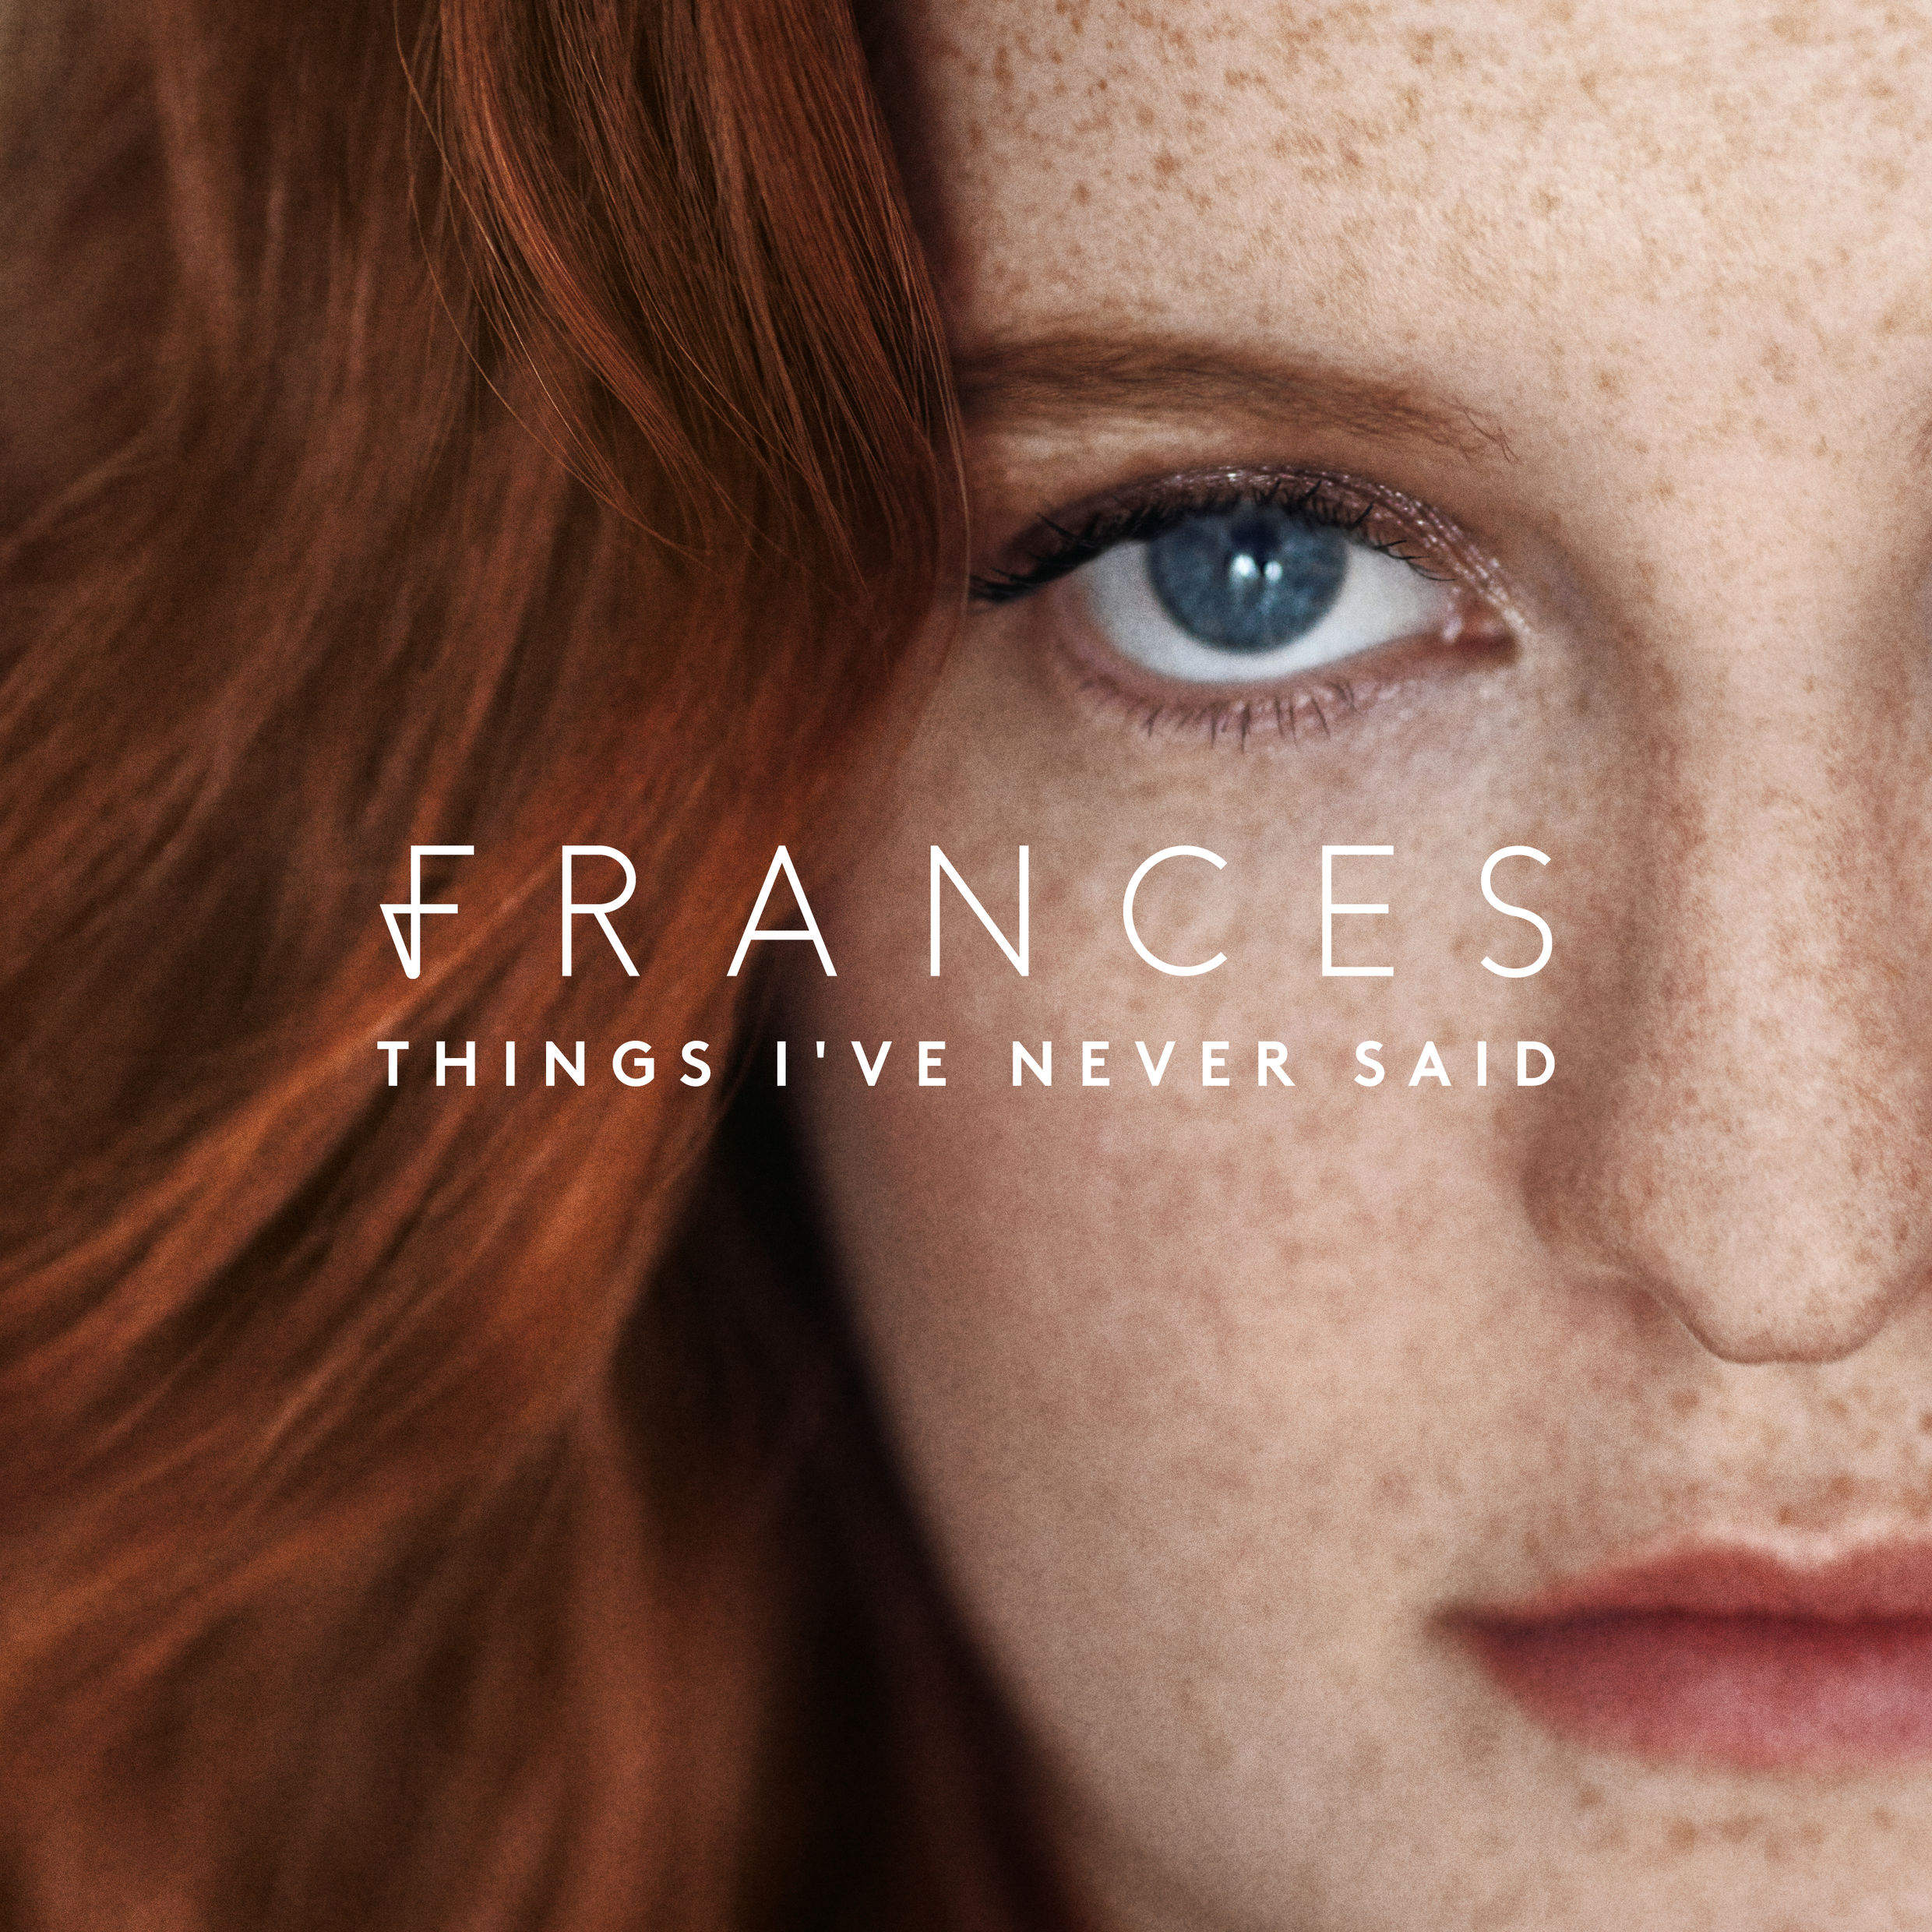 frances-music-things-ive-never-said-album-cover-capitol-music